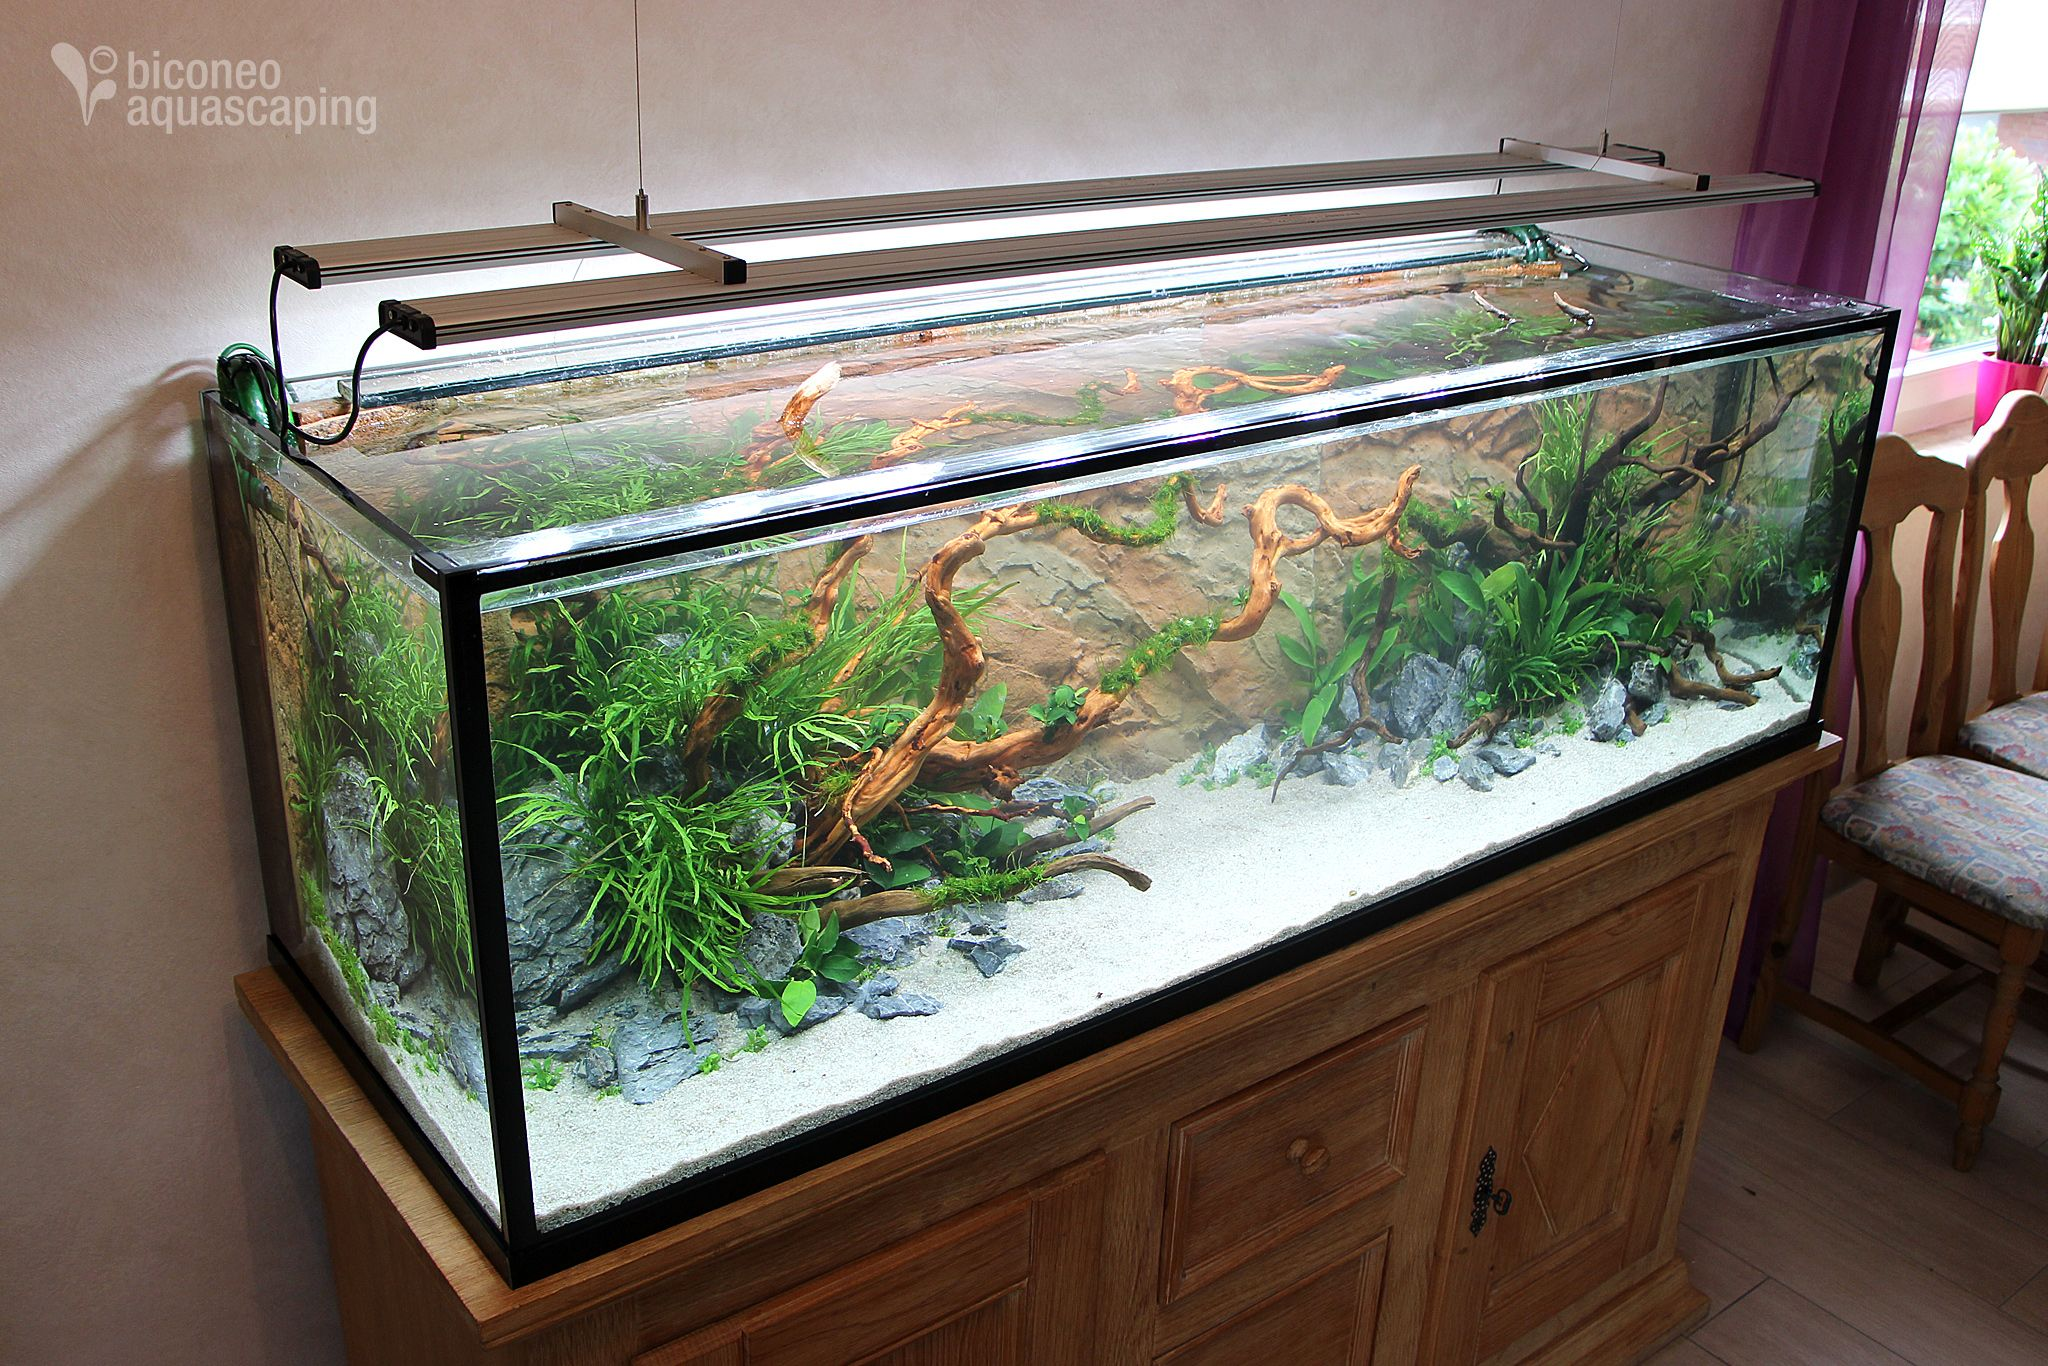 kundenprojekt aquascaping pinterest aquascaping aquarium und aquaristik. Black Bedroom Furniture Sets. Home Design Ideas